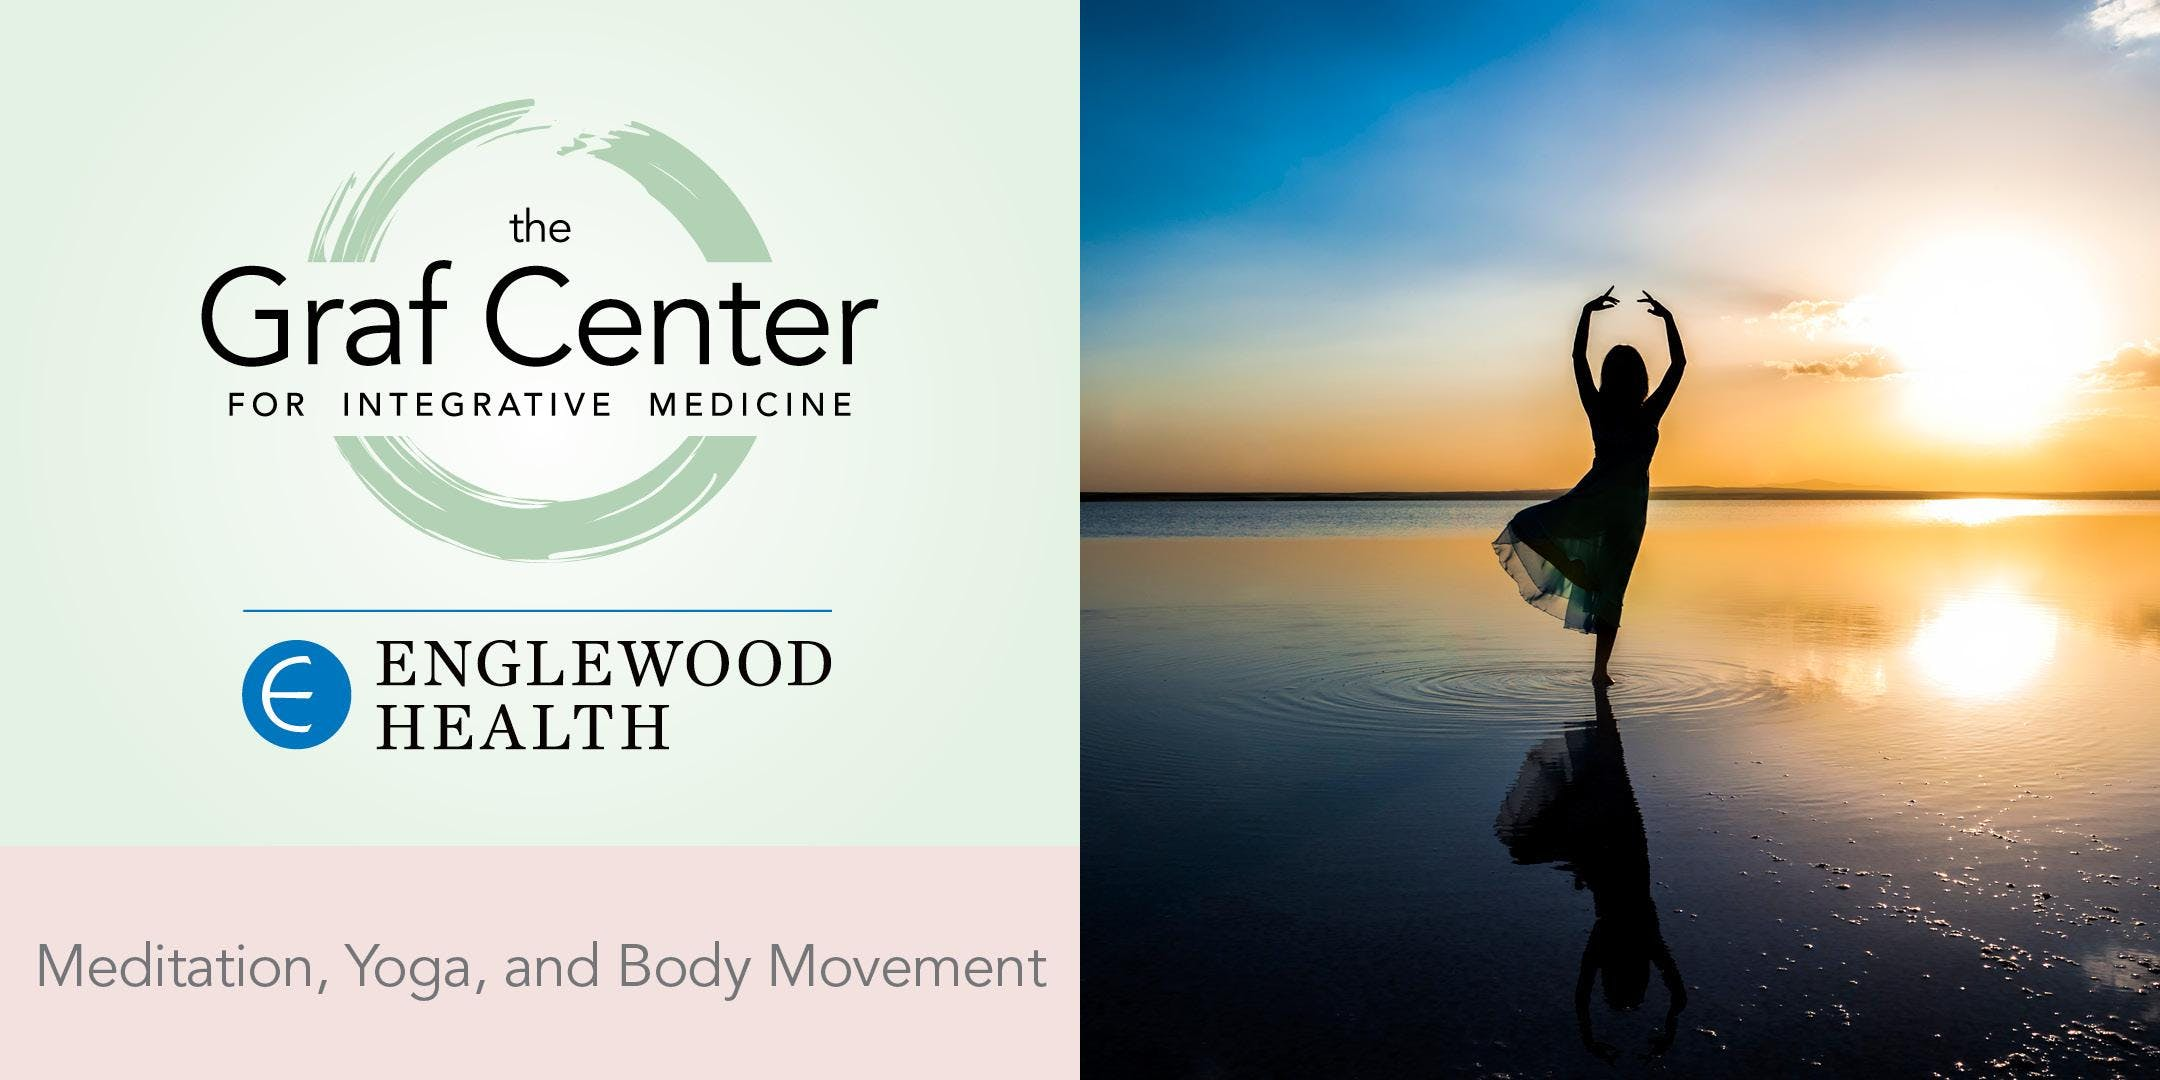 More info: Shake Your Soul®: Meditative Dance Workshop